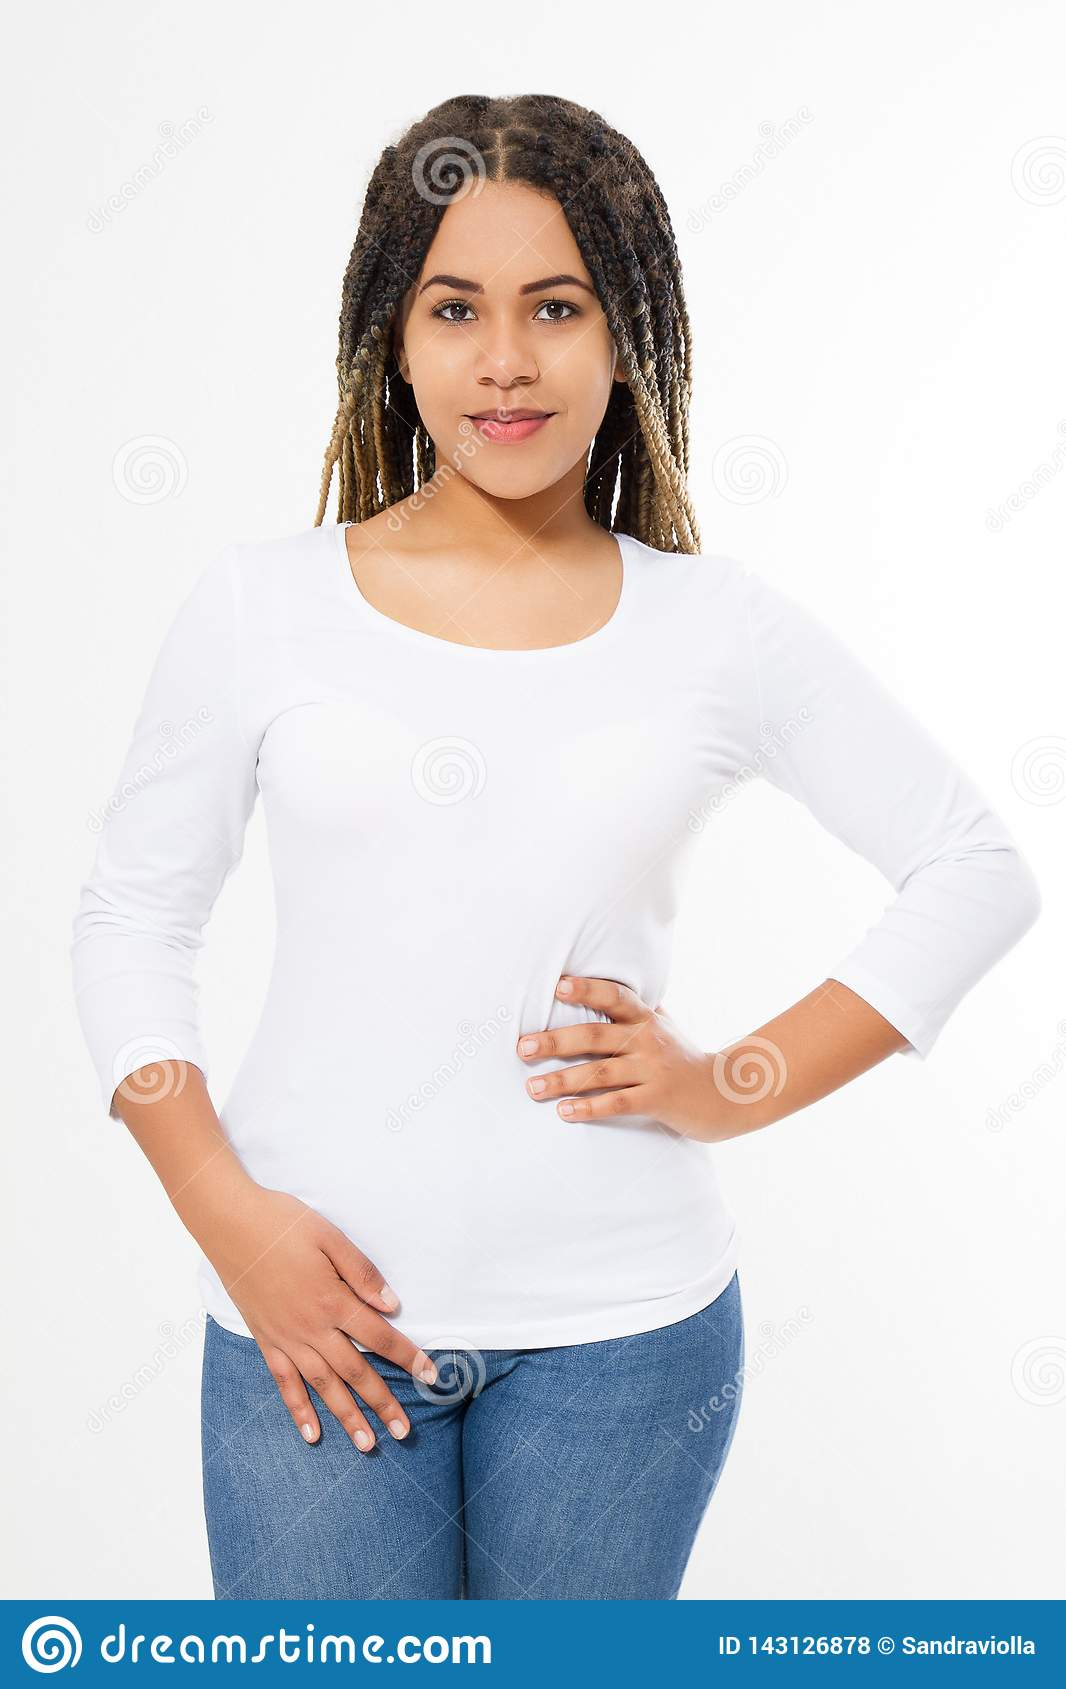 Summer t shirt design and people concept close up of young afro american woman in blank template white t-shirt. Mock up. Copy